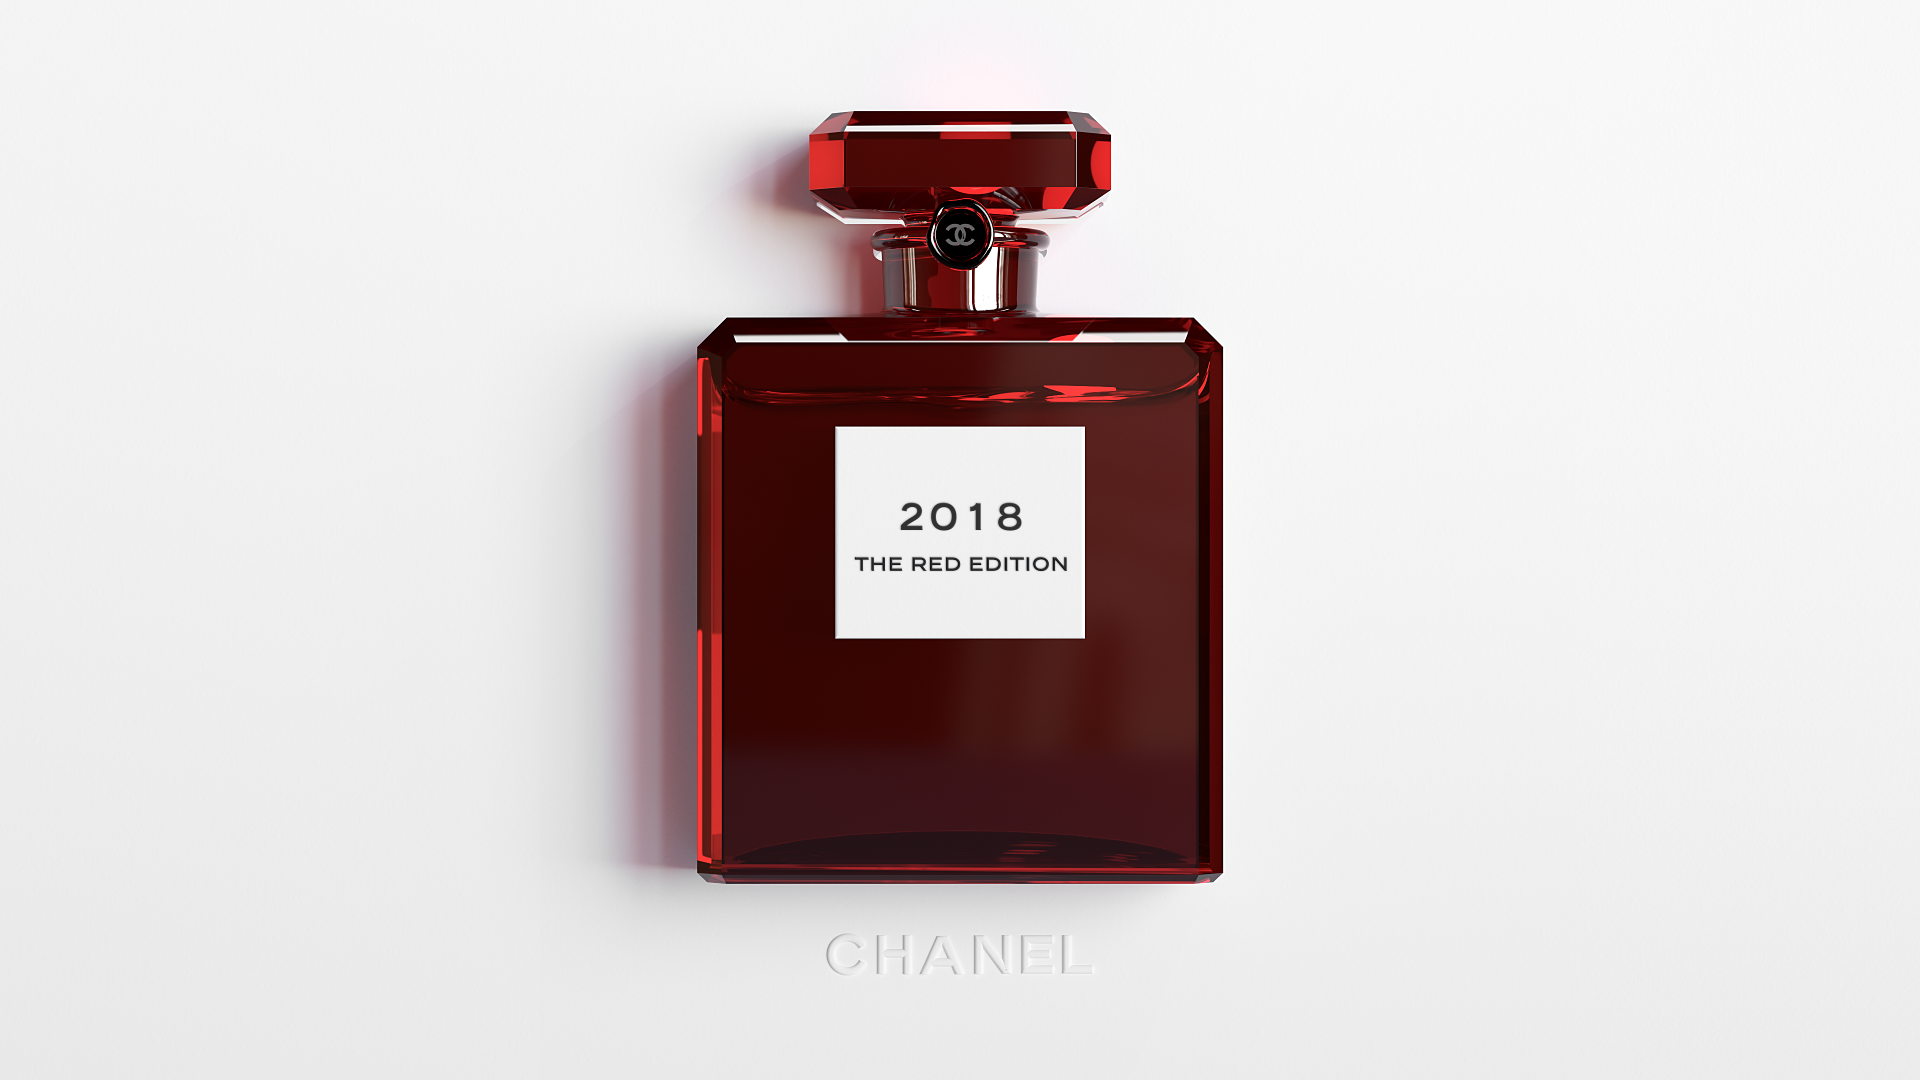 BC1015 Chanel - Best Wishes_16-9_00727.png